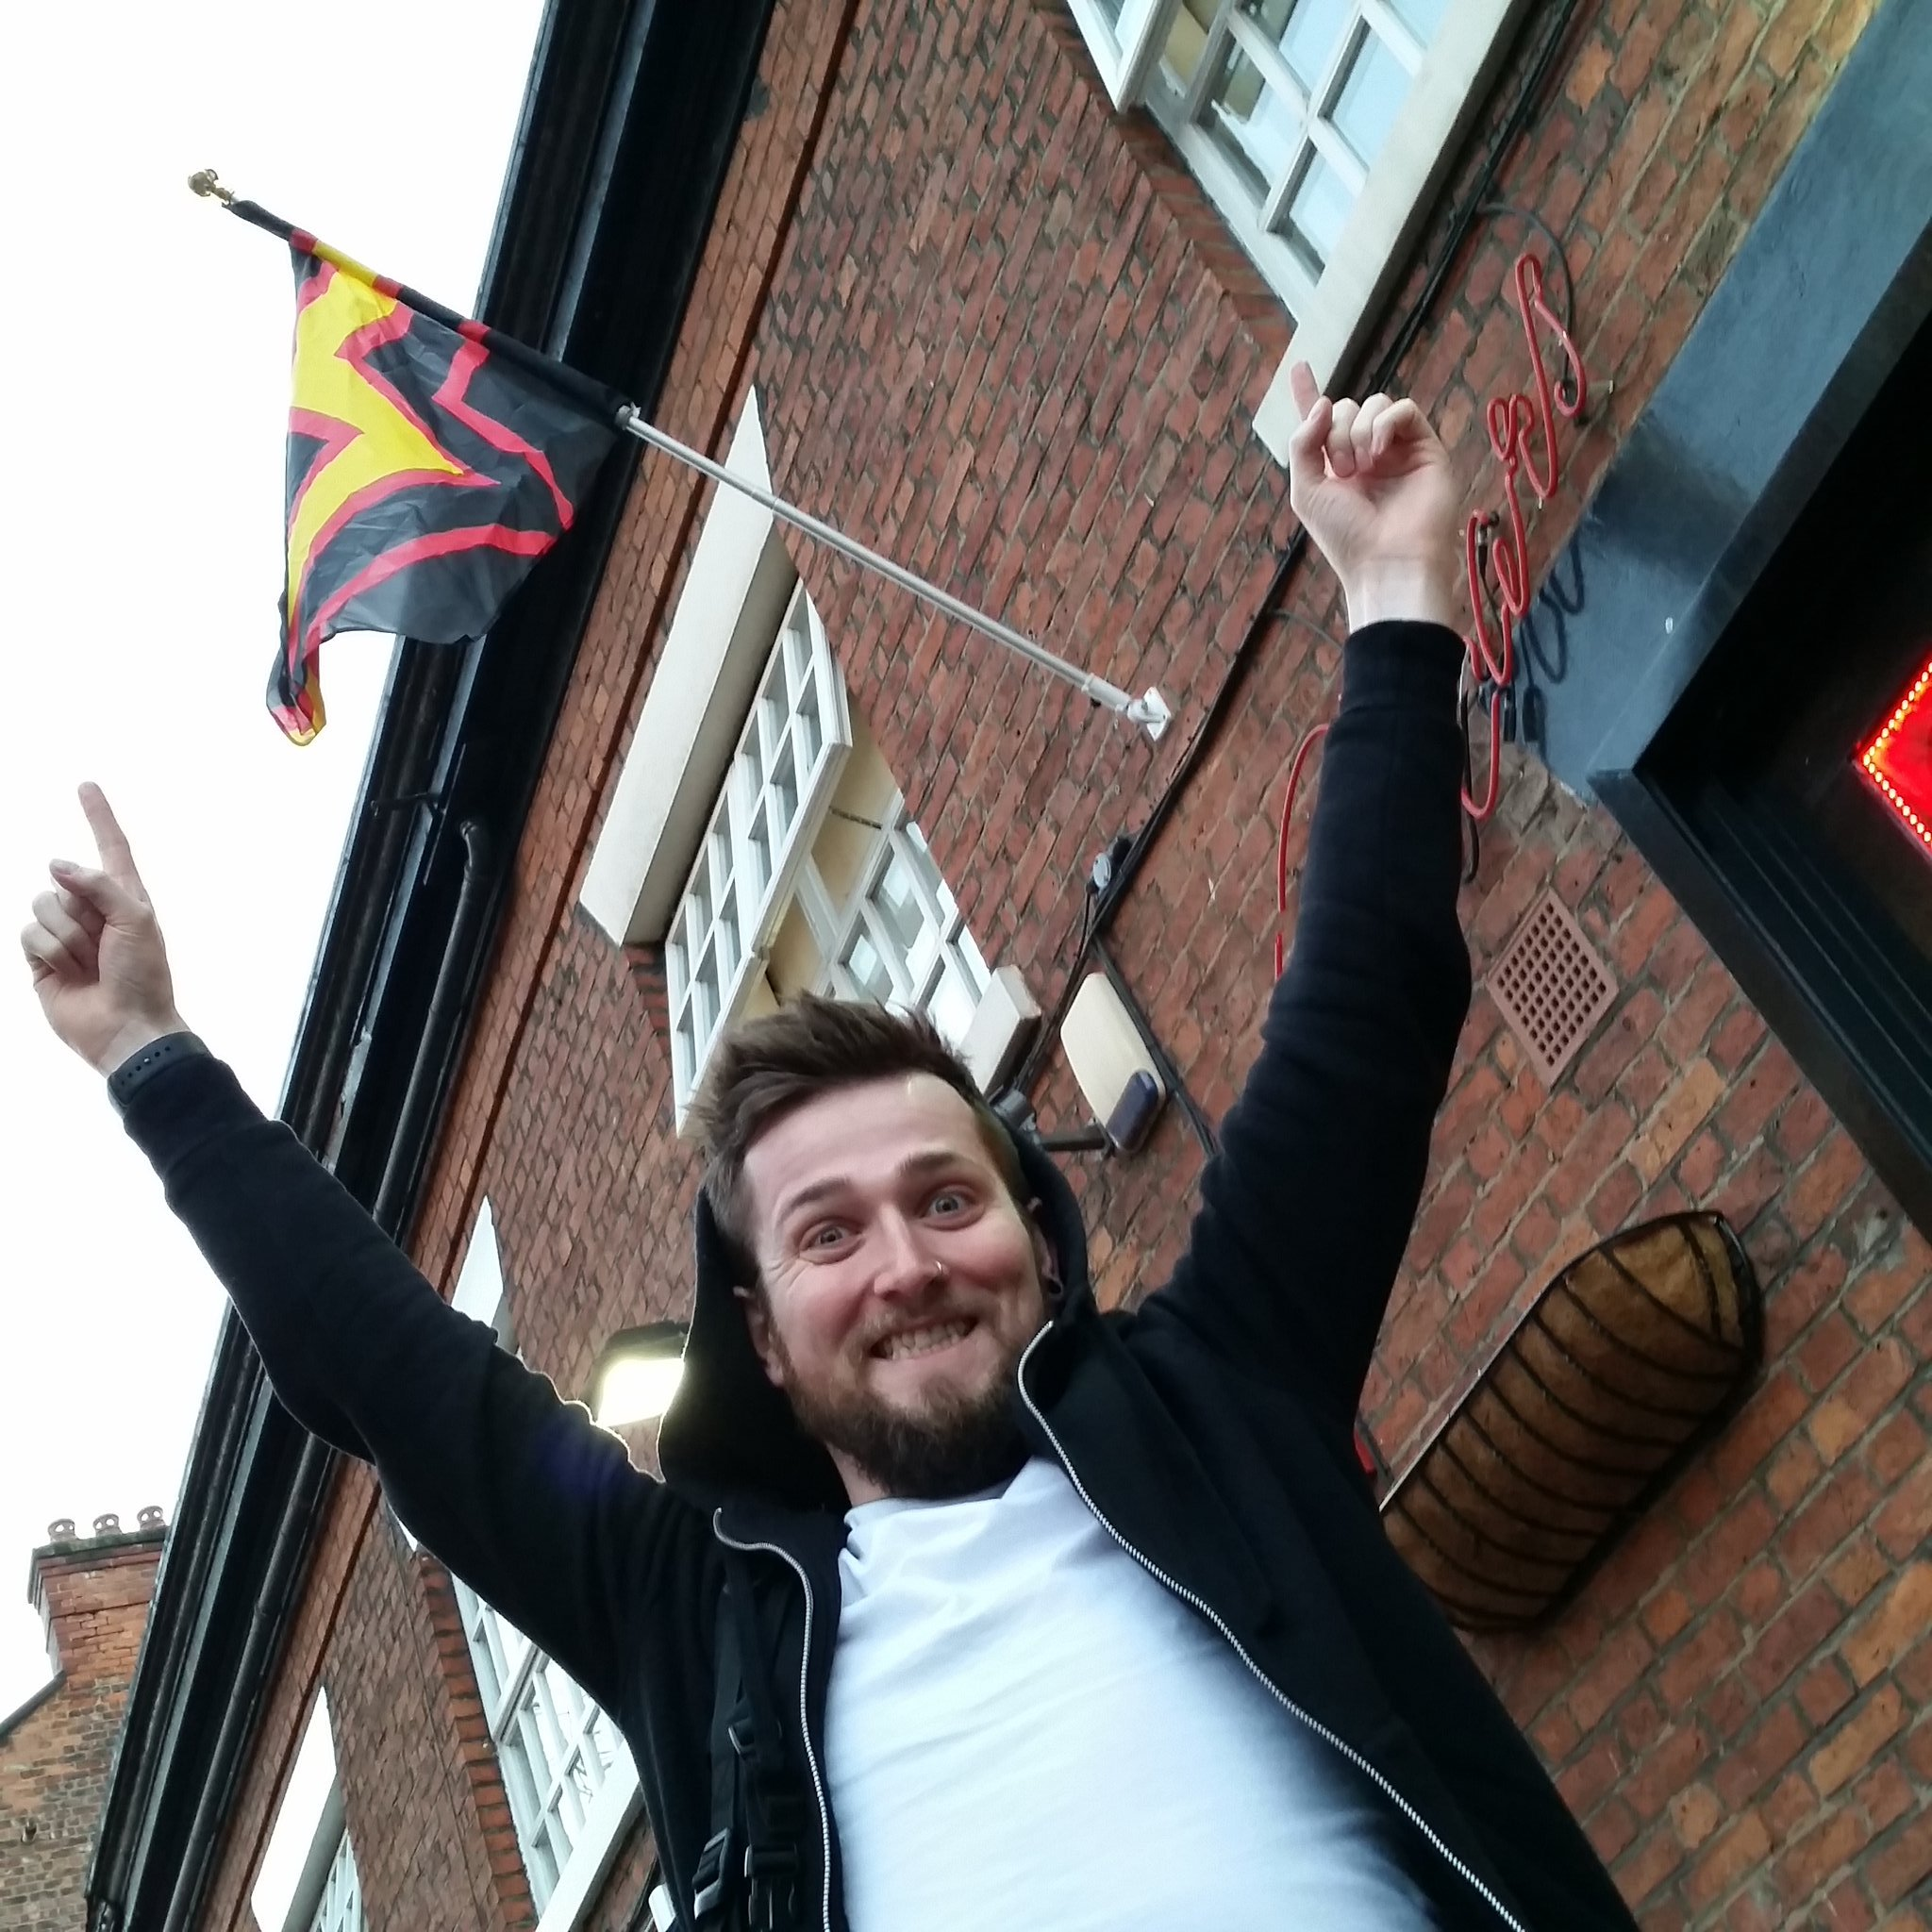 RT @MancRubMen: The first of the flags has been spotted up in the village! #MRM7 https://t.co/XWFr9HtnNa